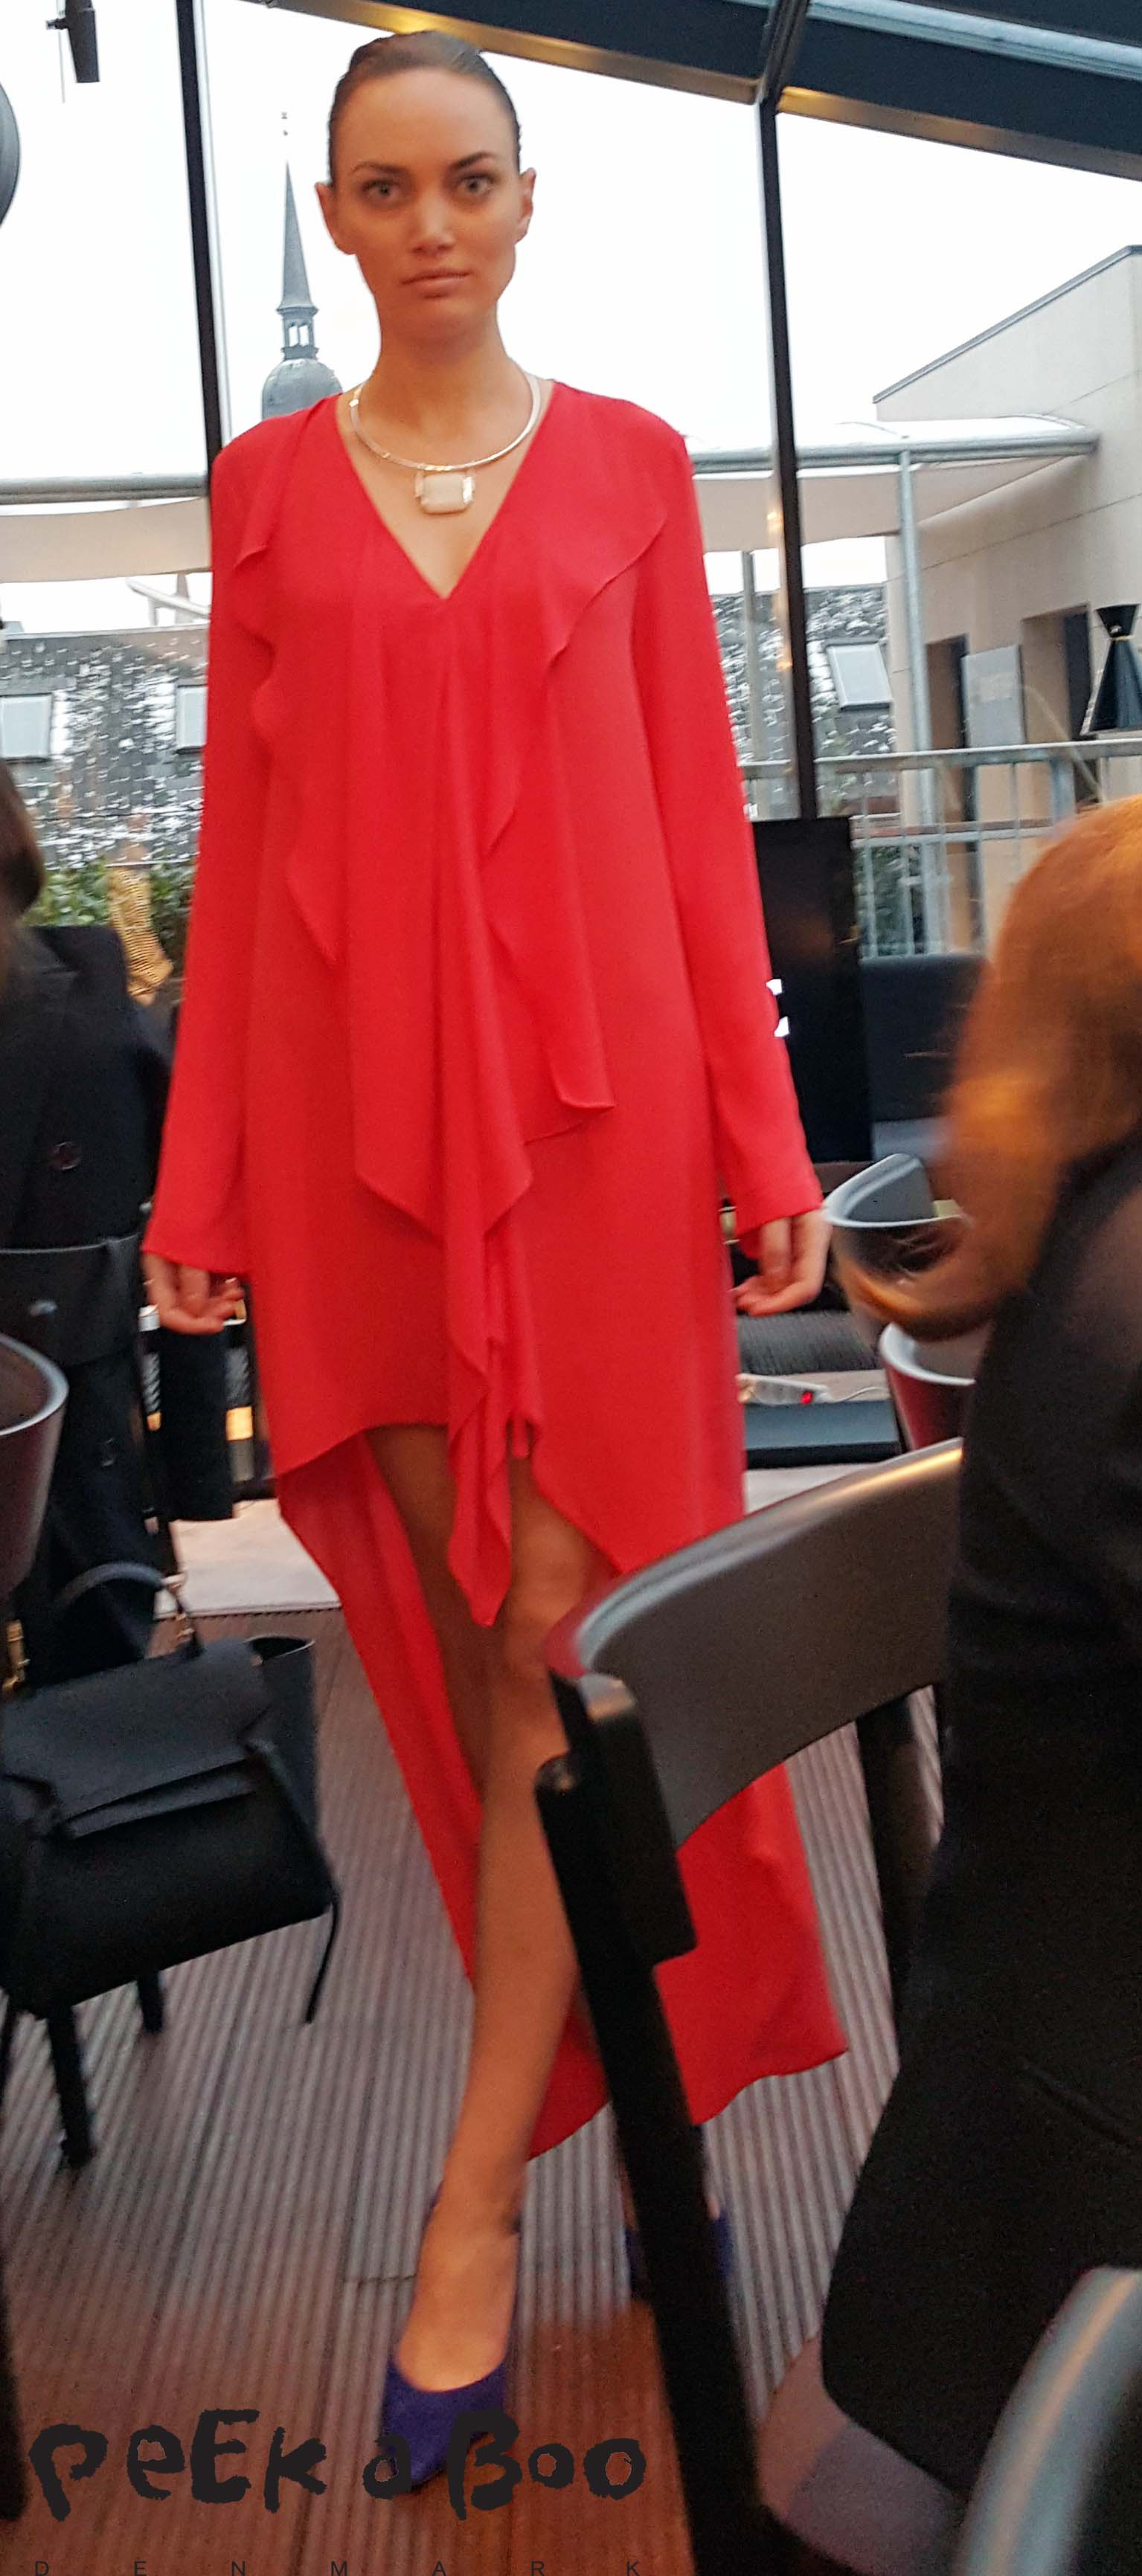 Orange party dress from BCBG Maxazria SS16 collection. They will open a shop in Copenhagen later this month.